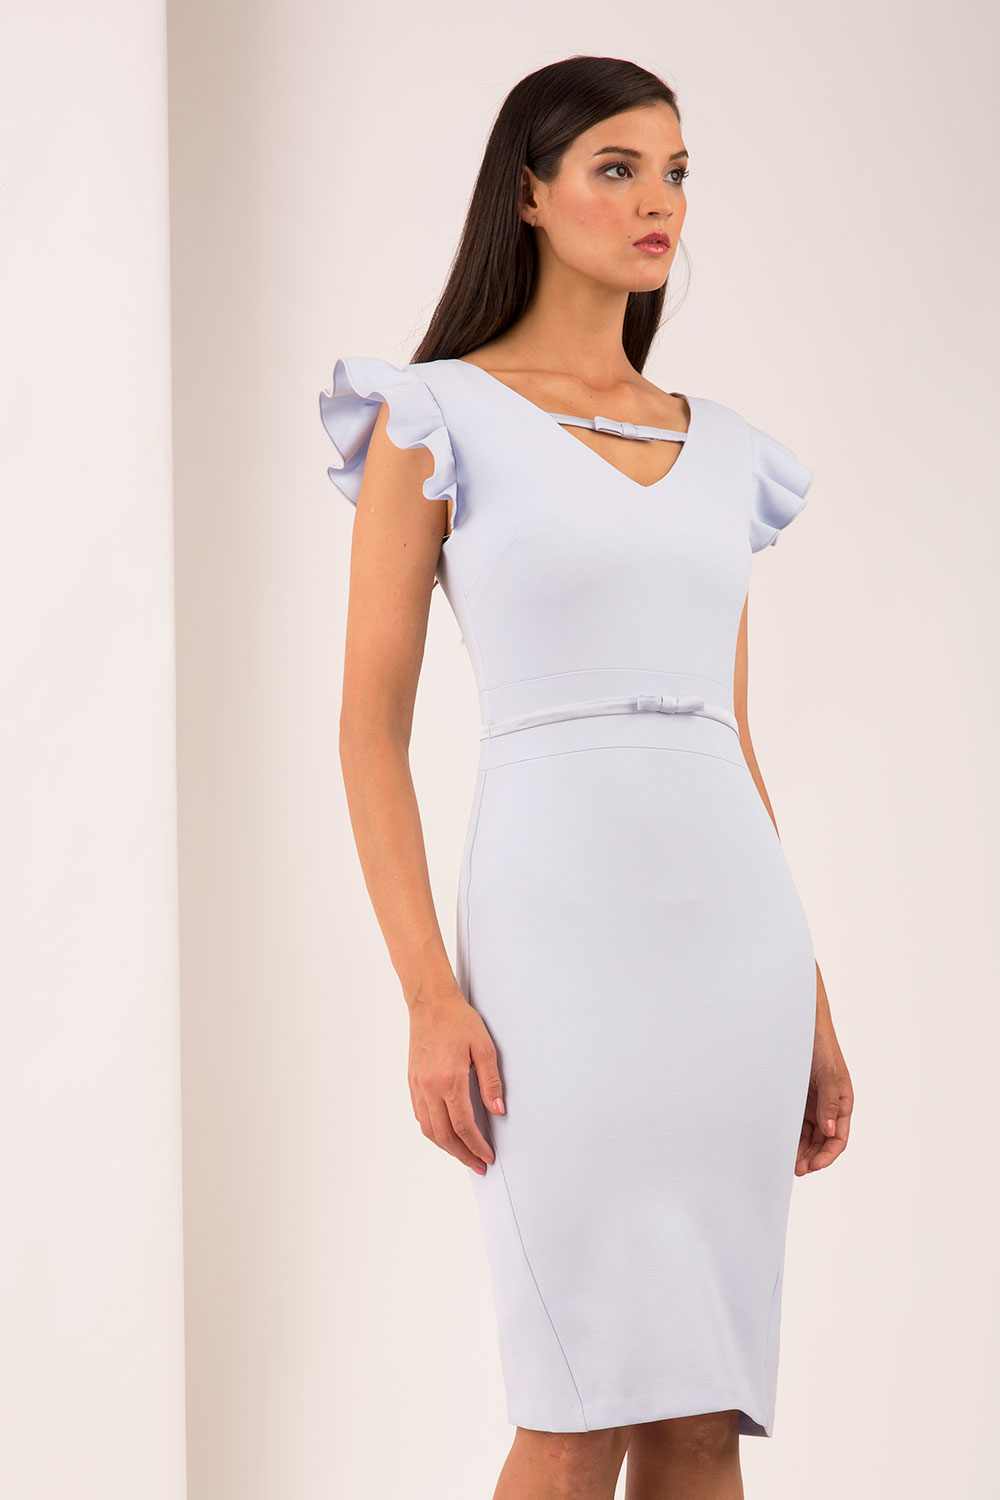 Hybrid Fashion Crawford 1284 Frill Sleeve Pencil Dress